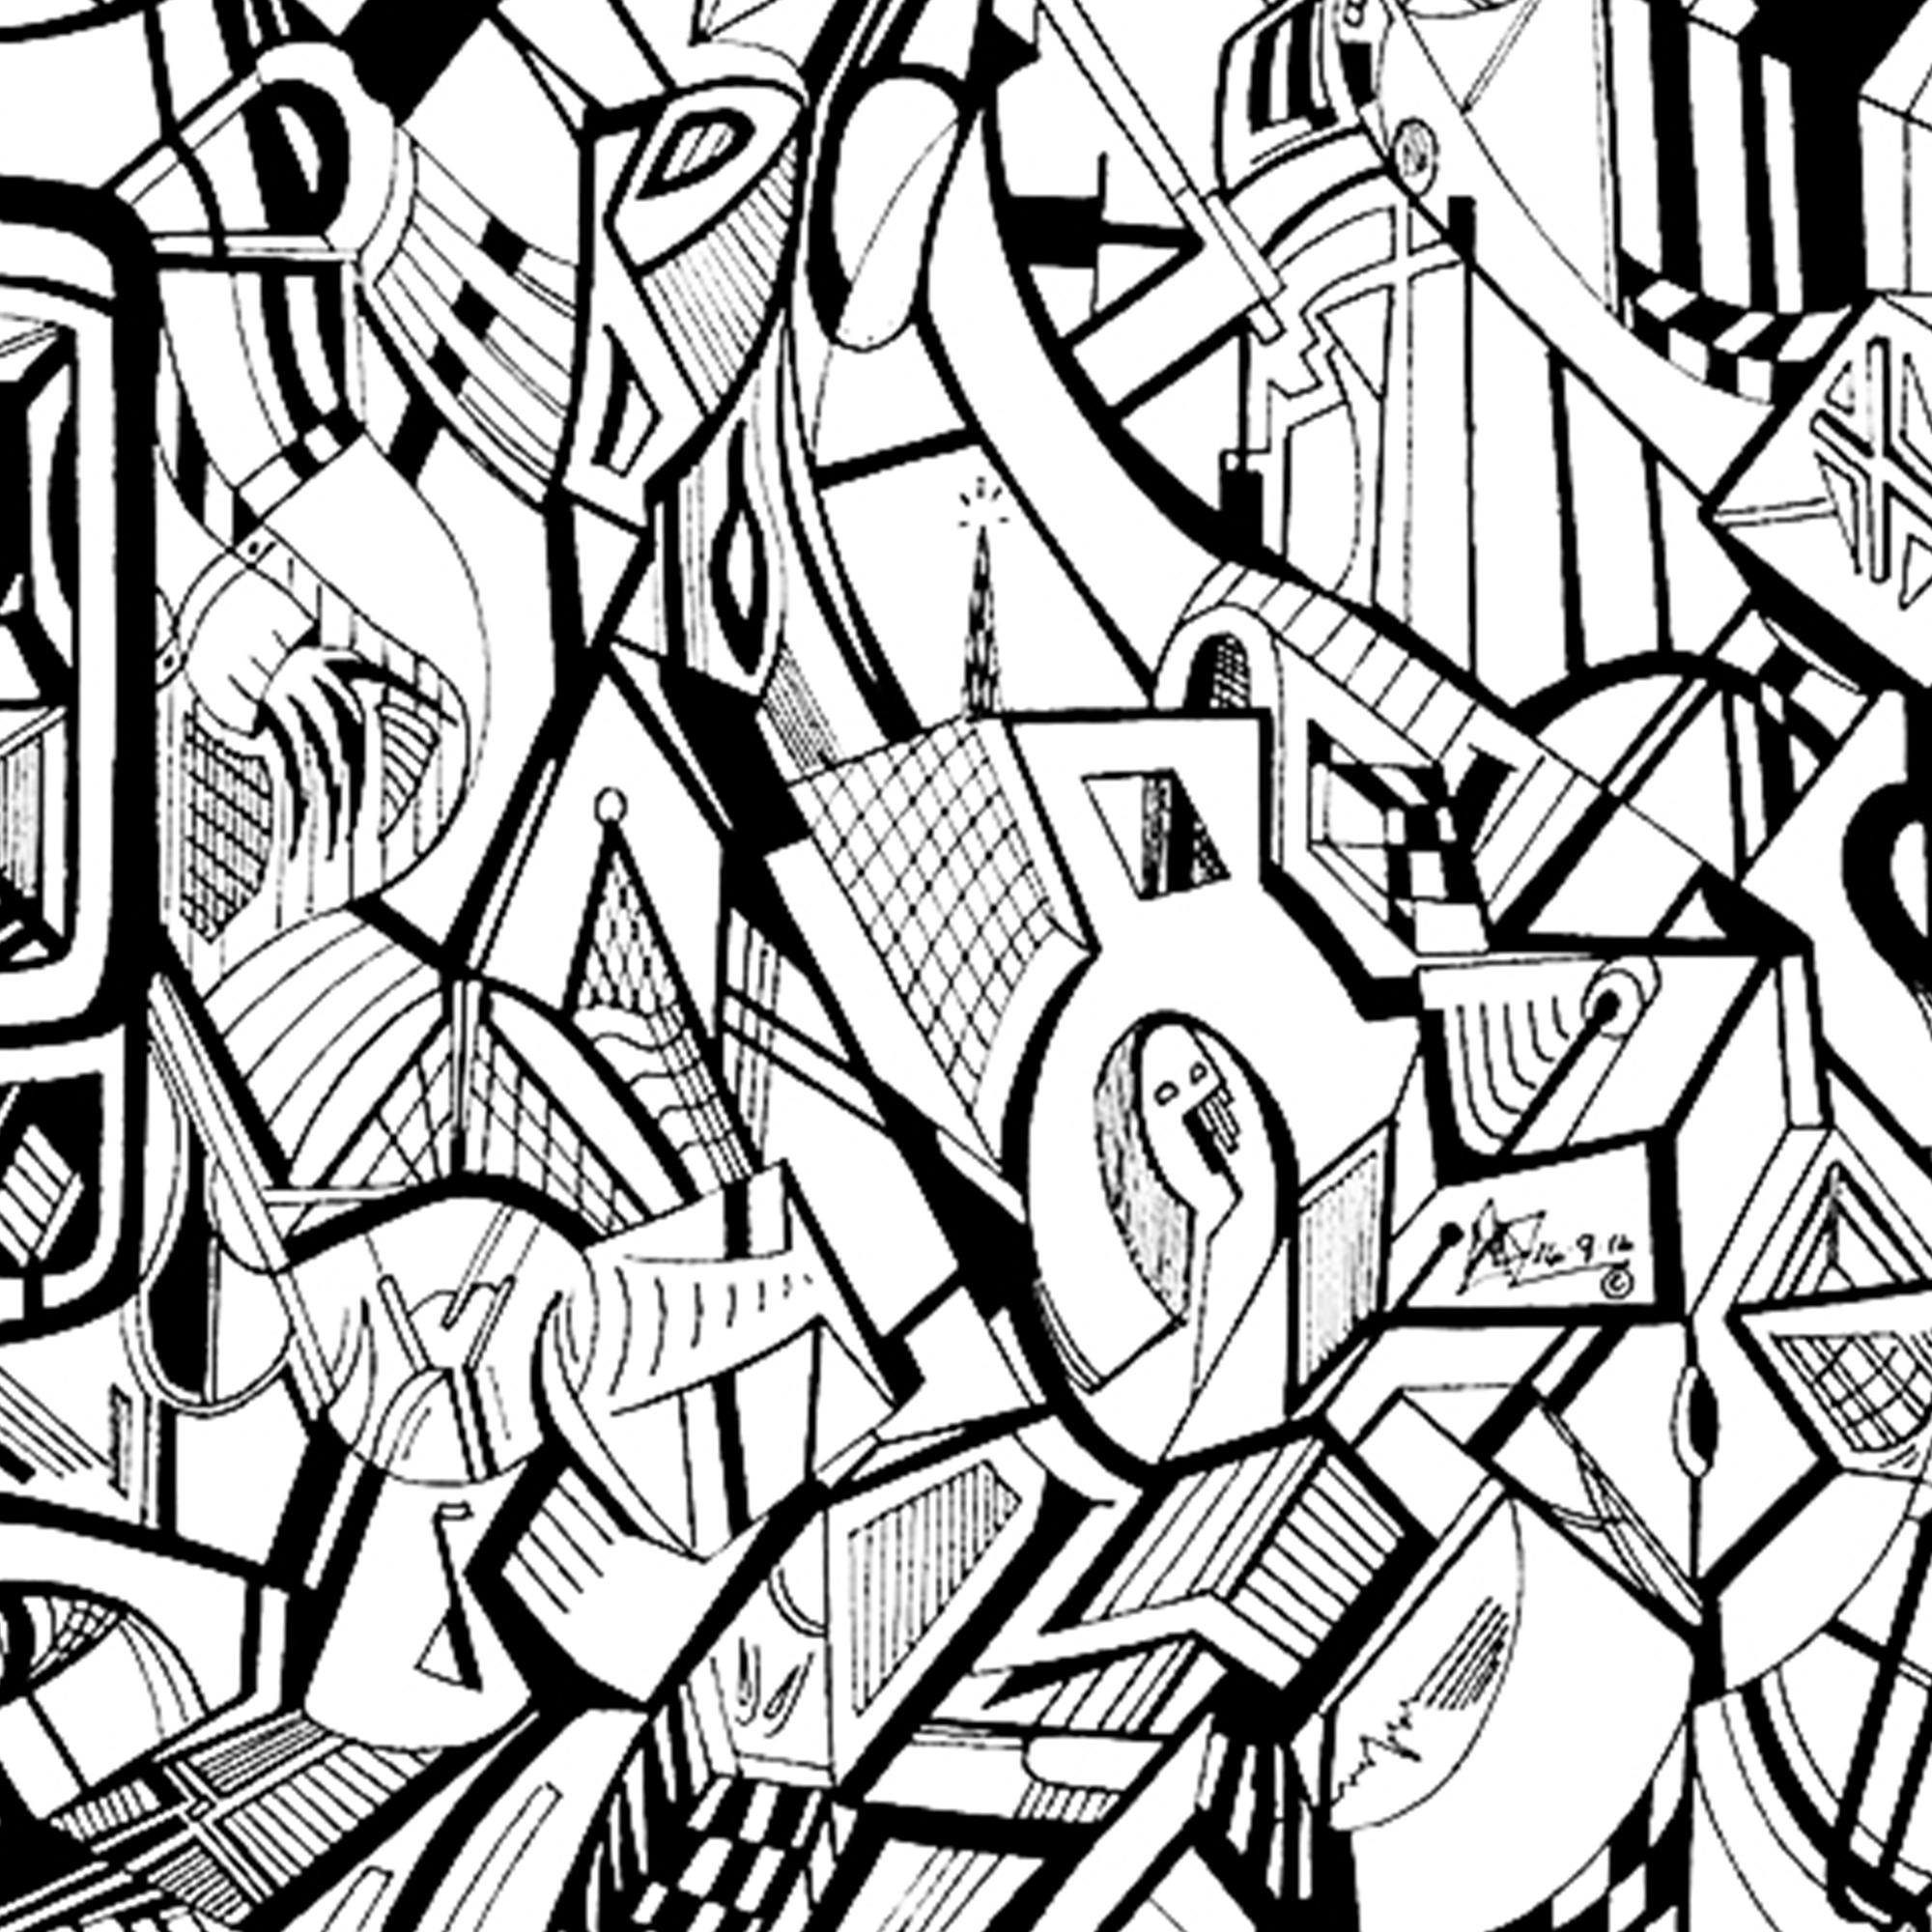 Close up of a fine art print from Jason Clarke titled Mobile drawn with a black Pentel pen.